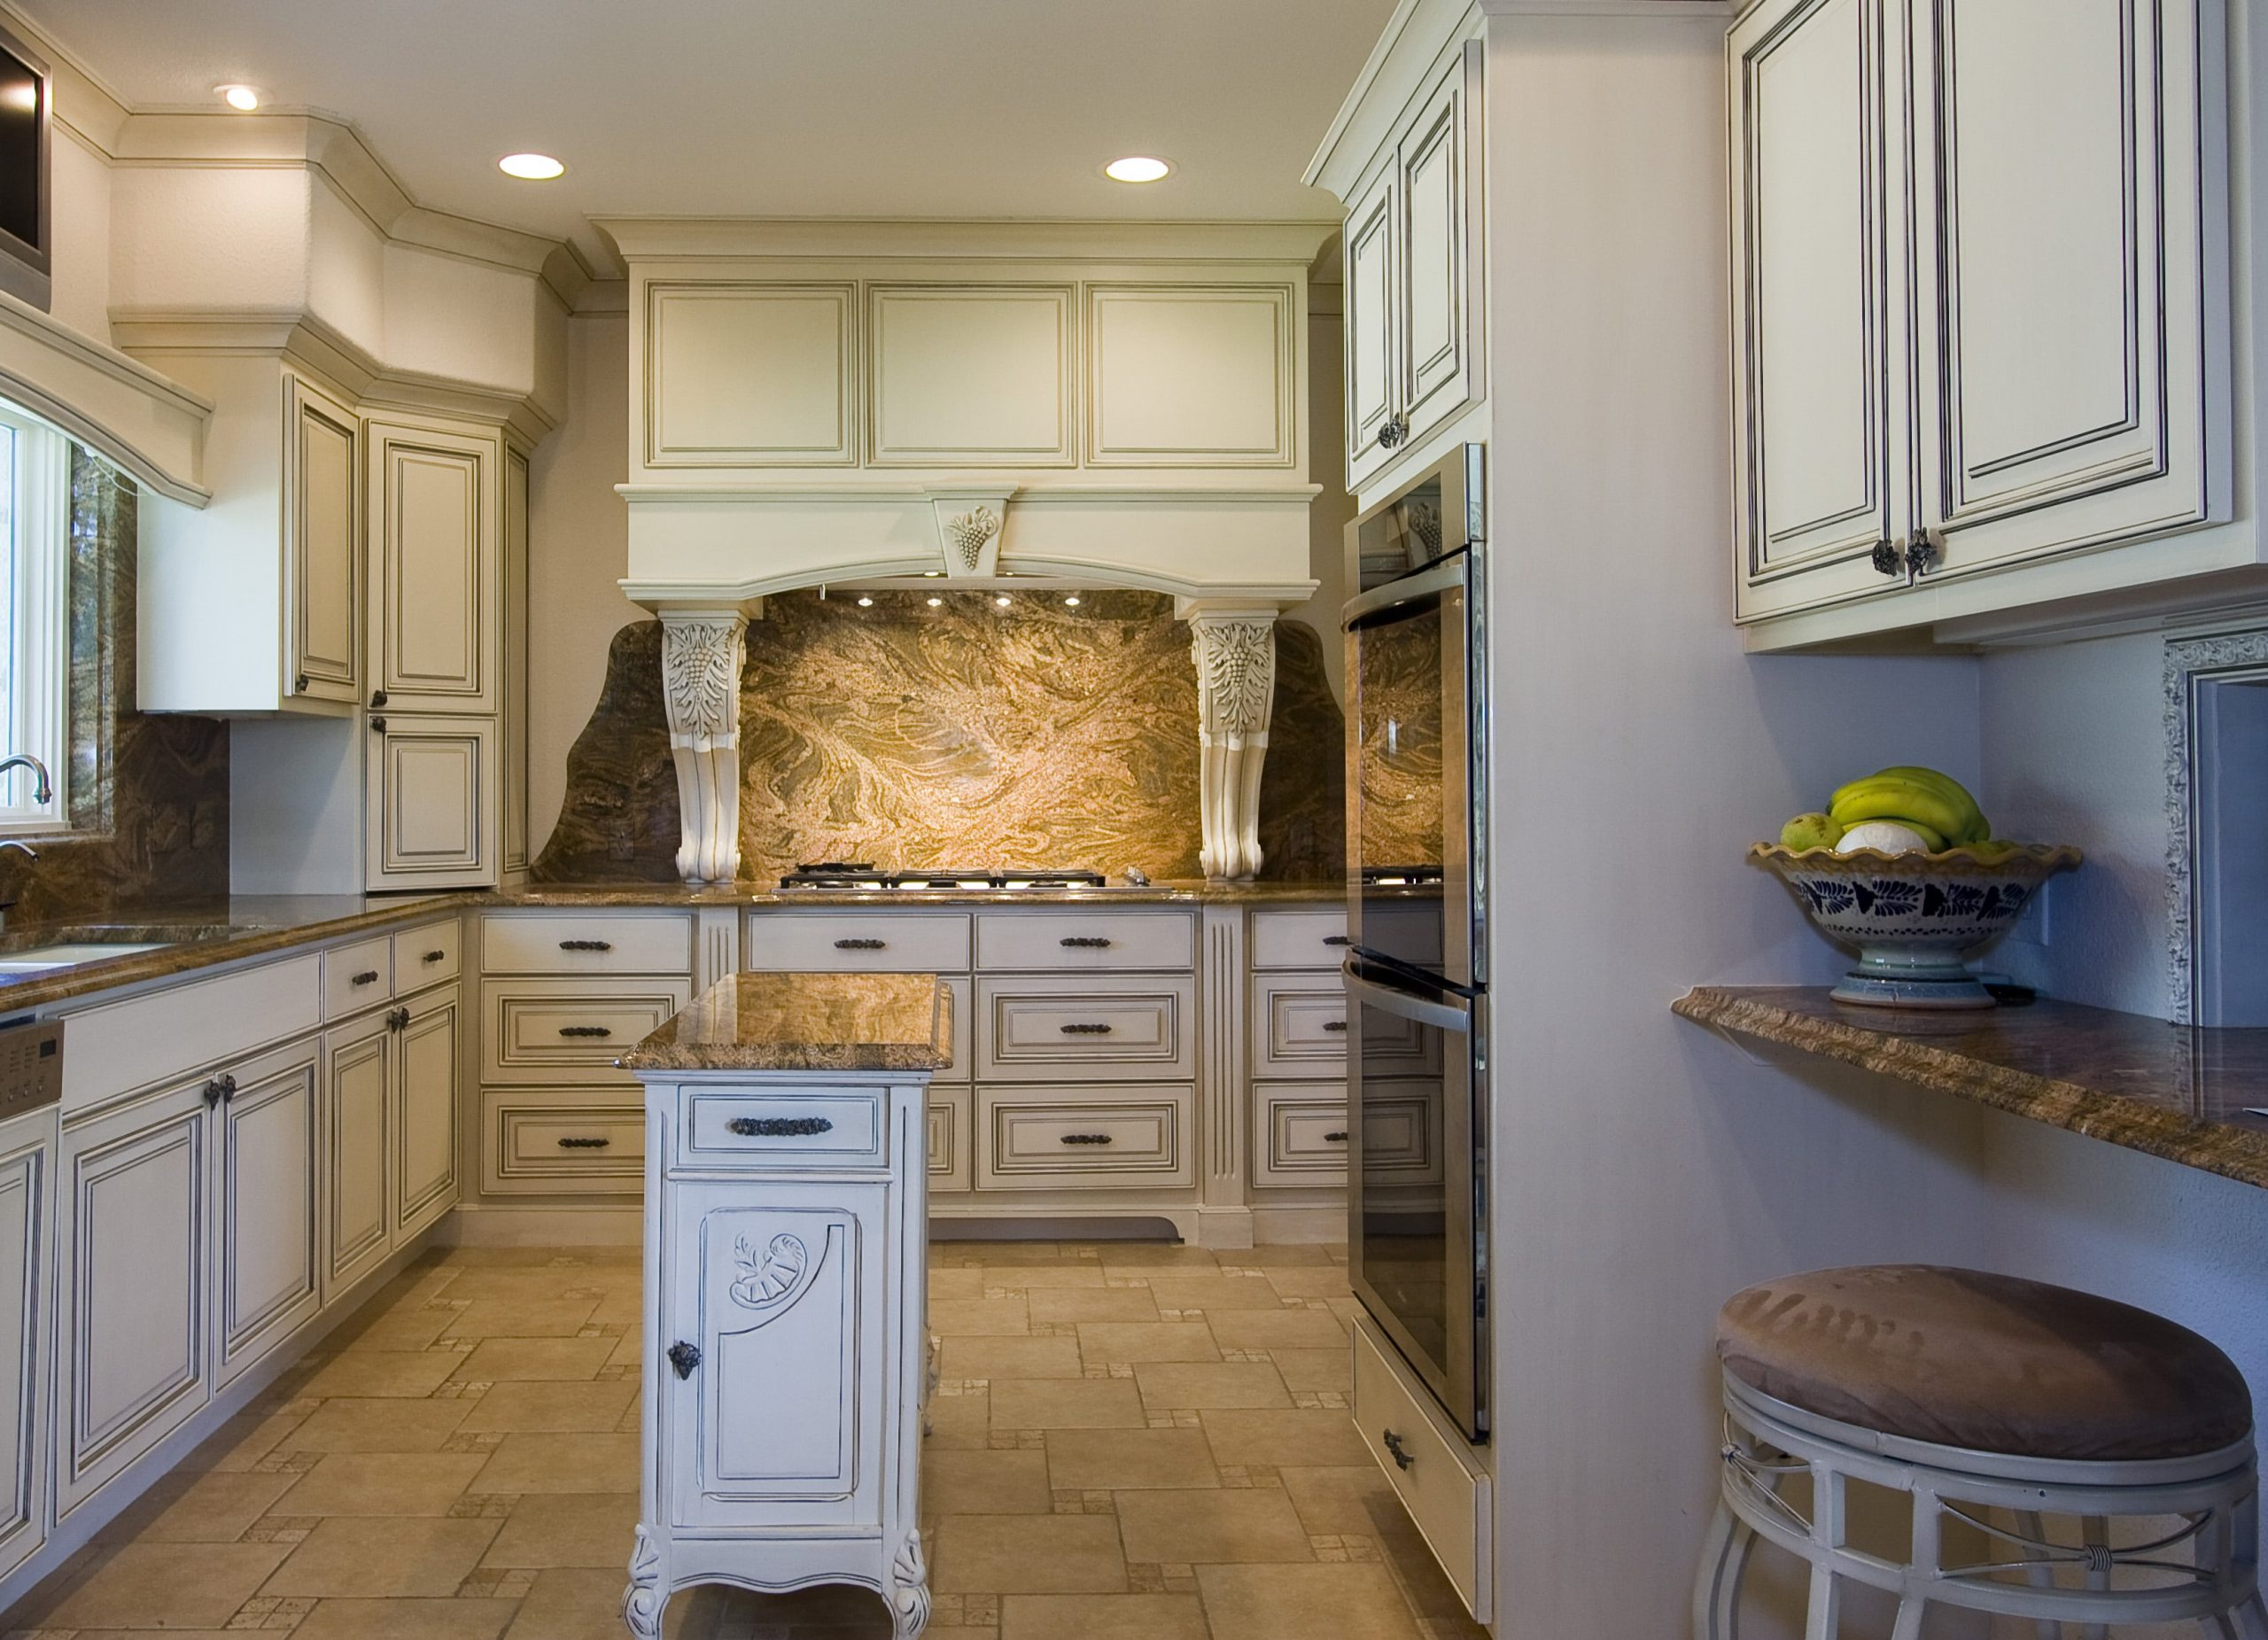 Clack kitchen renovation with marble backsplash, white cabinets, and custom vent hood, with double oven, and desk area